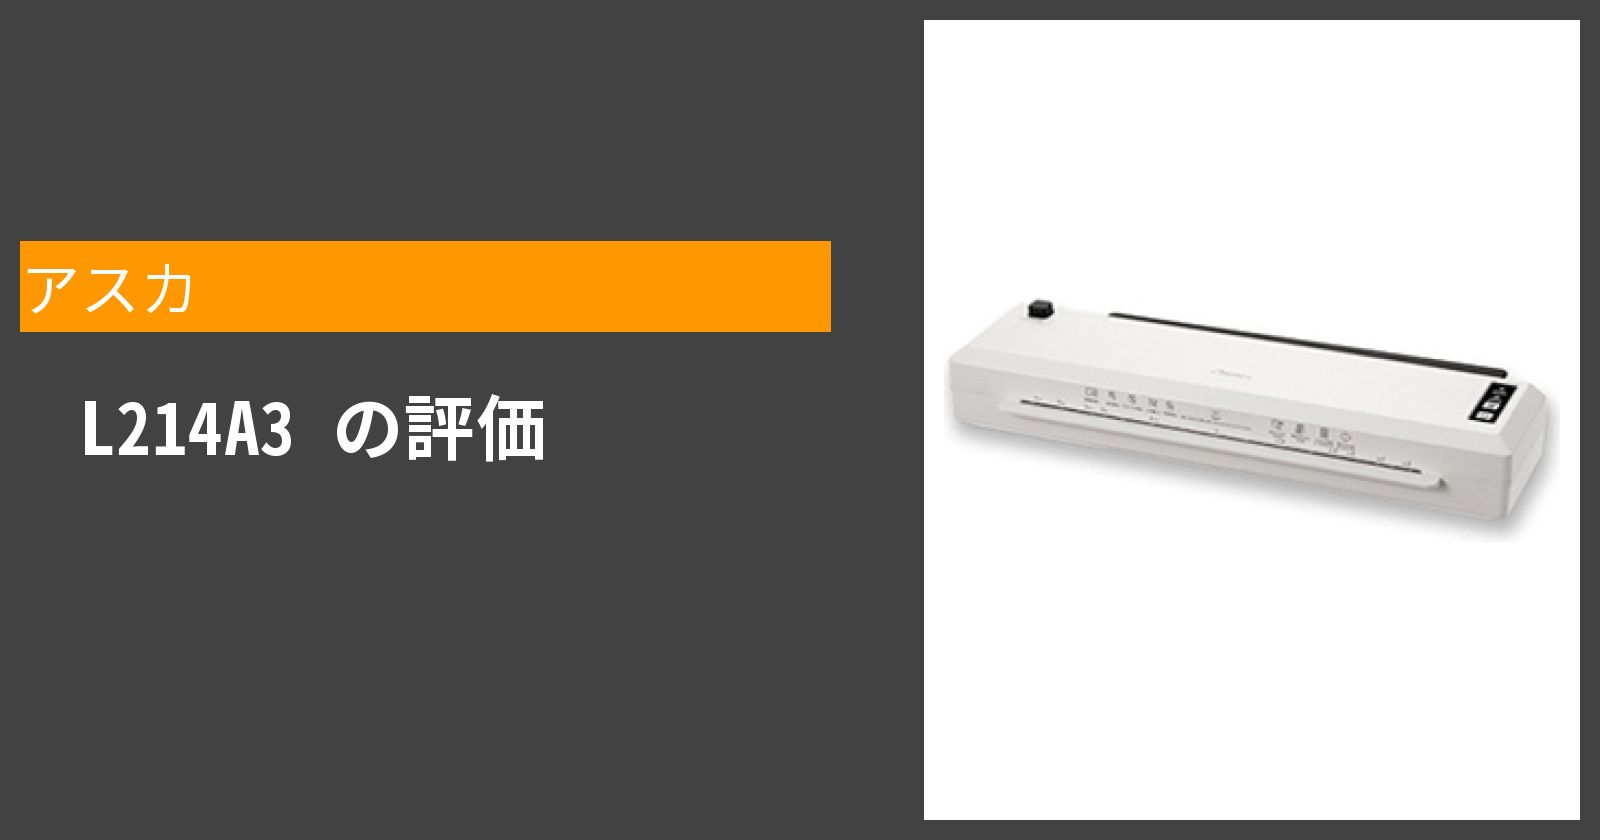 L214A3を徹底評価